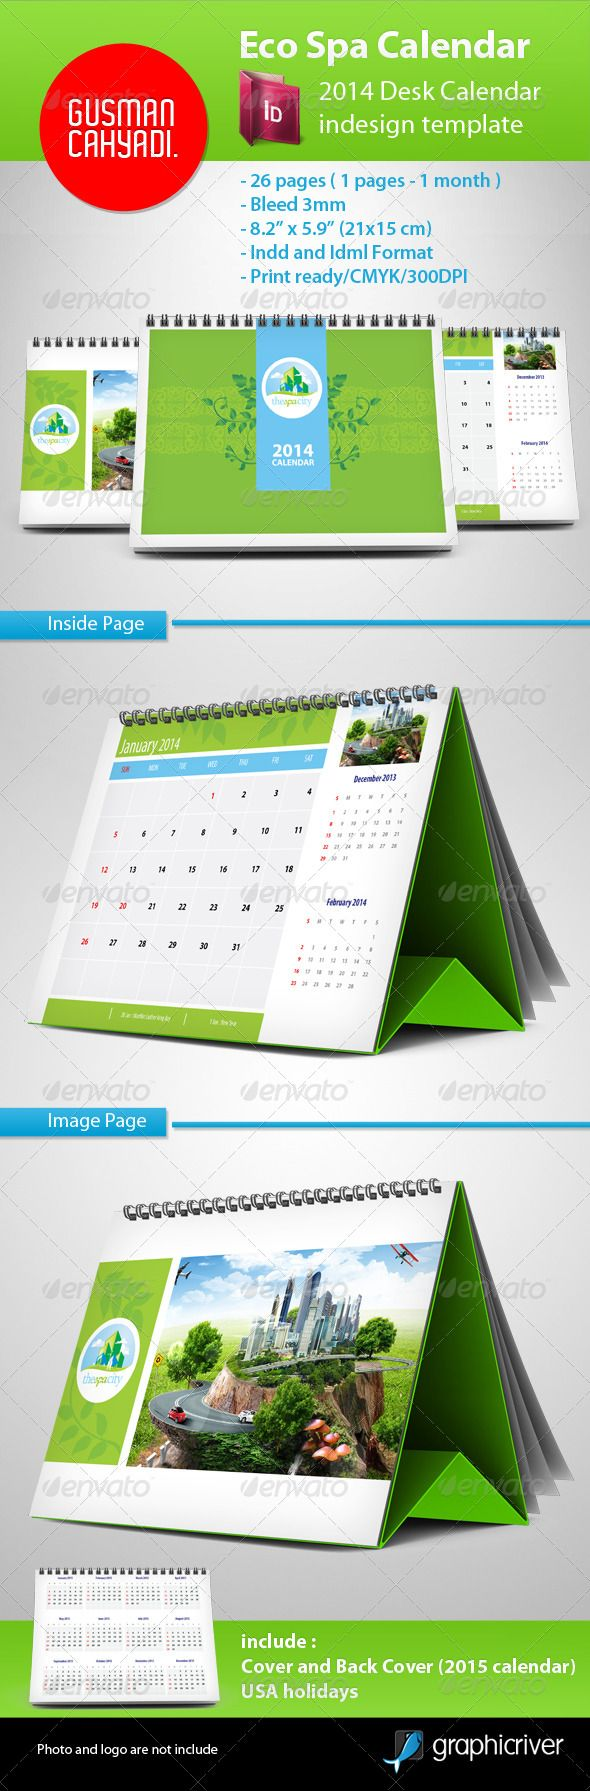 Corporate Calendars : Best images about corporate calendar design on